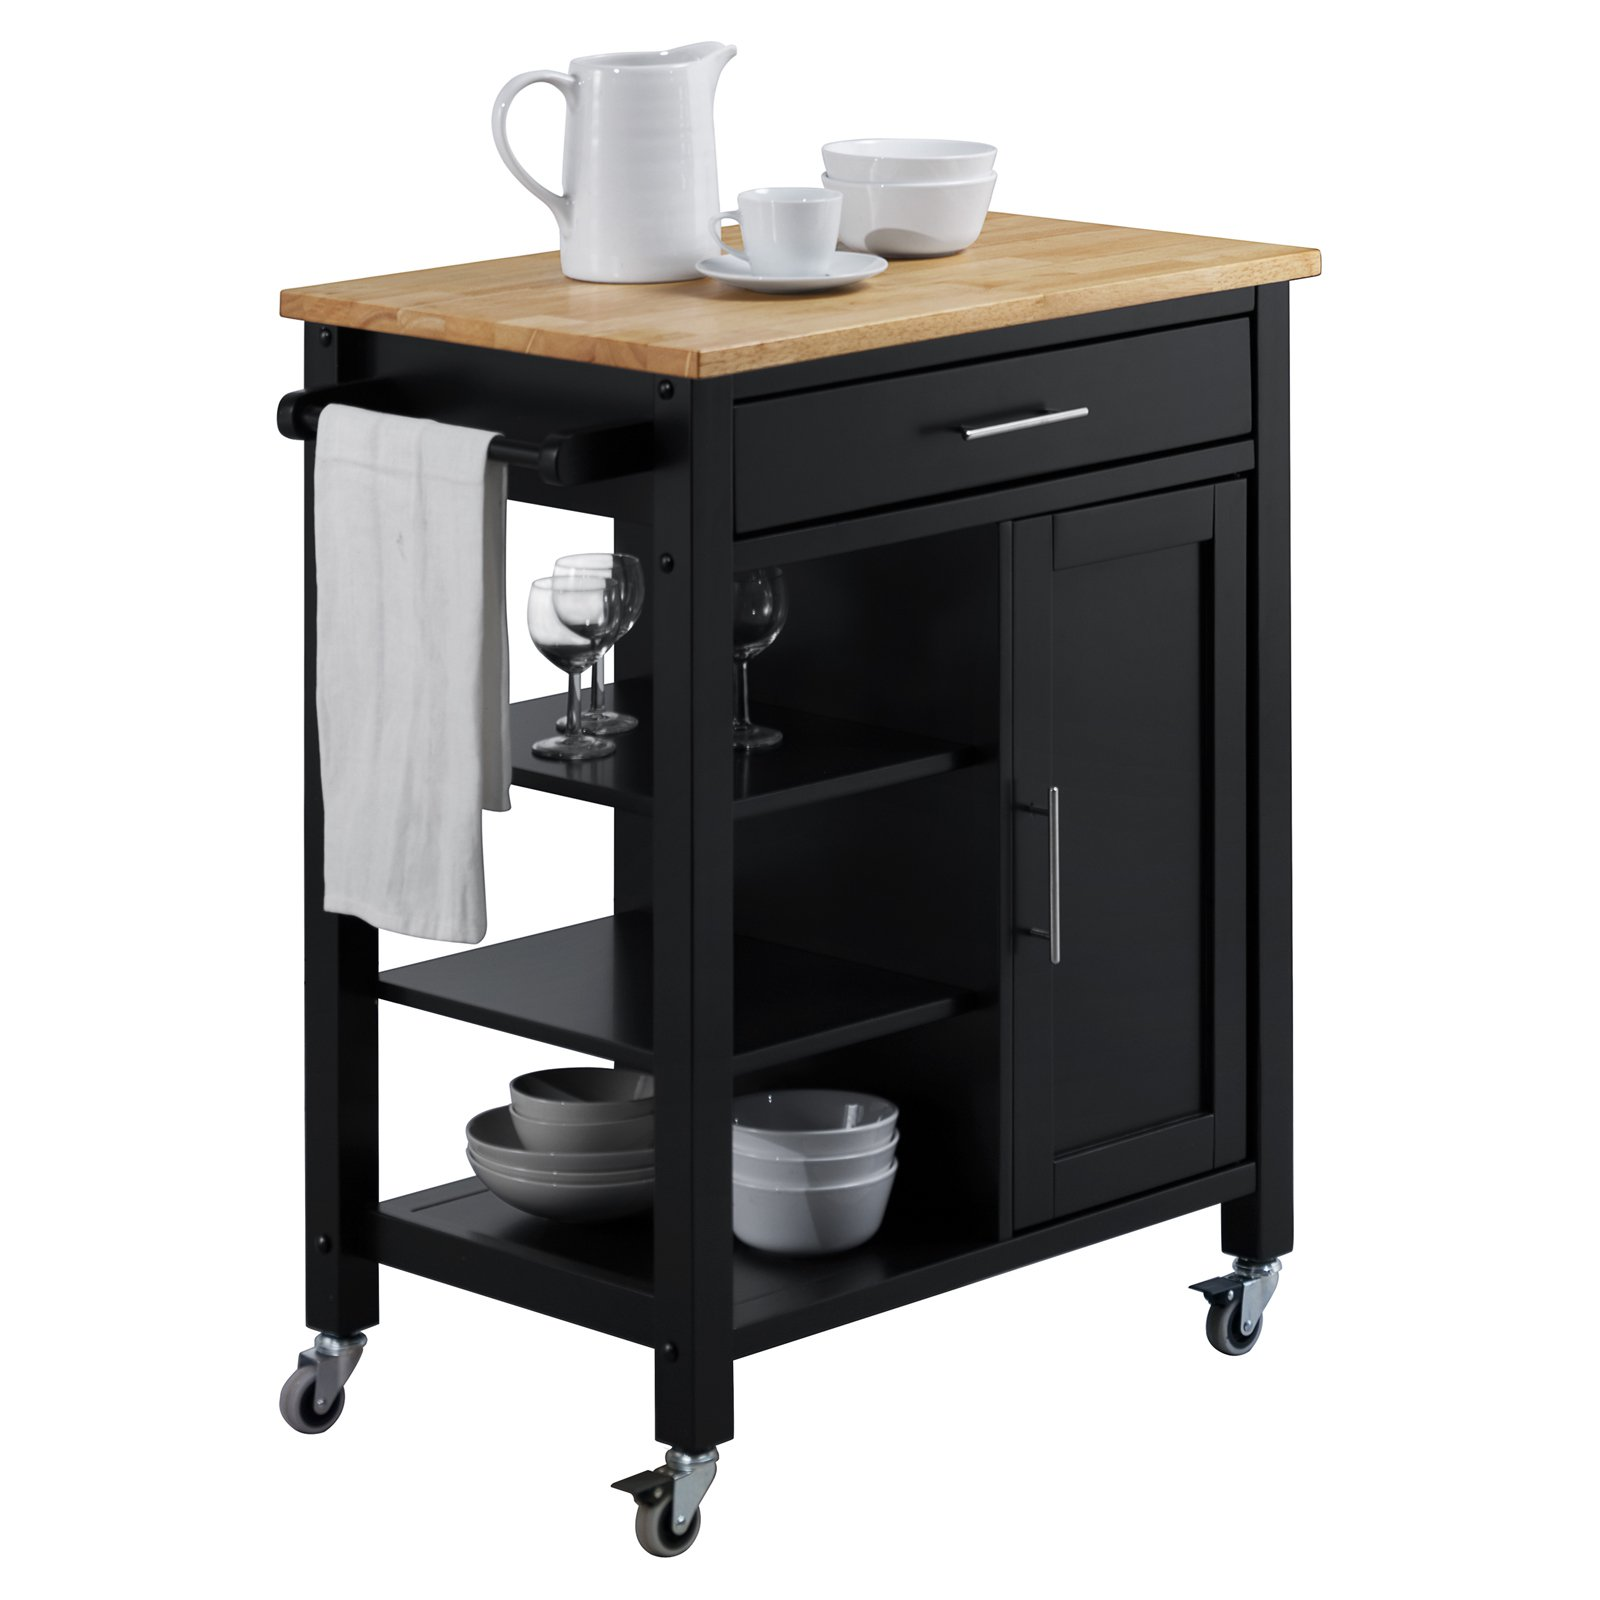 EDMONTON KITCHEN CART - BLACK